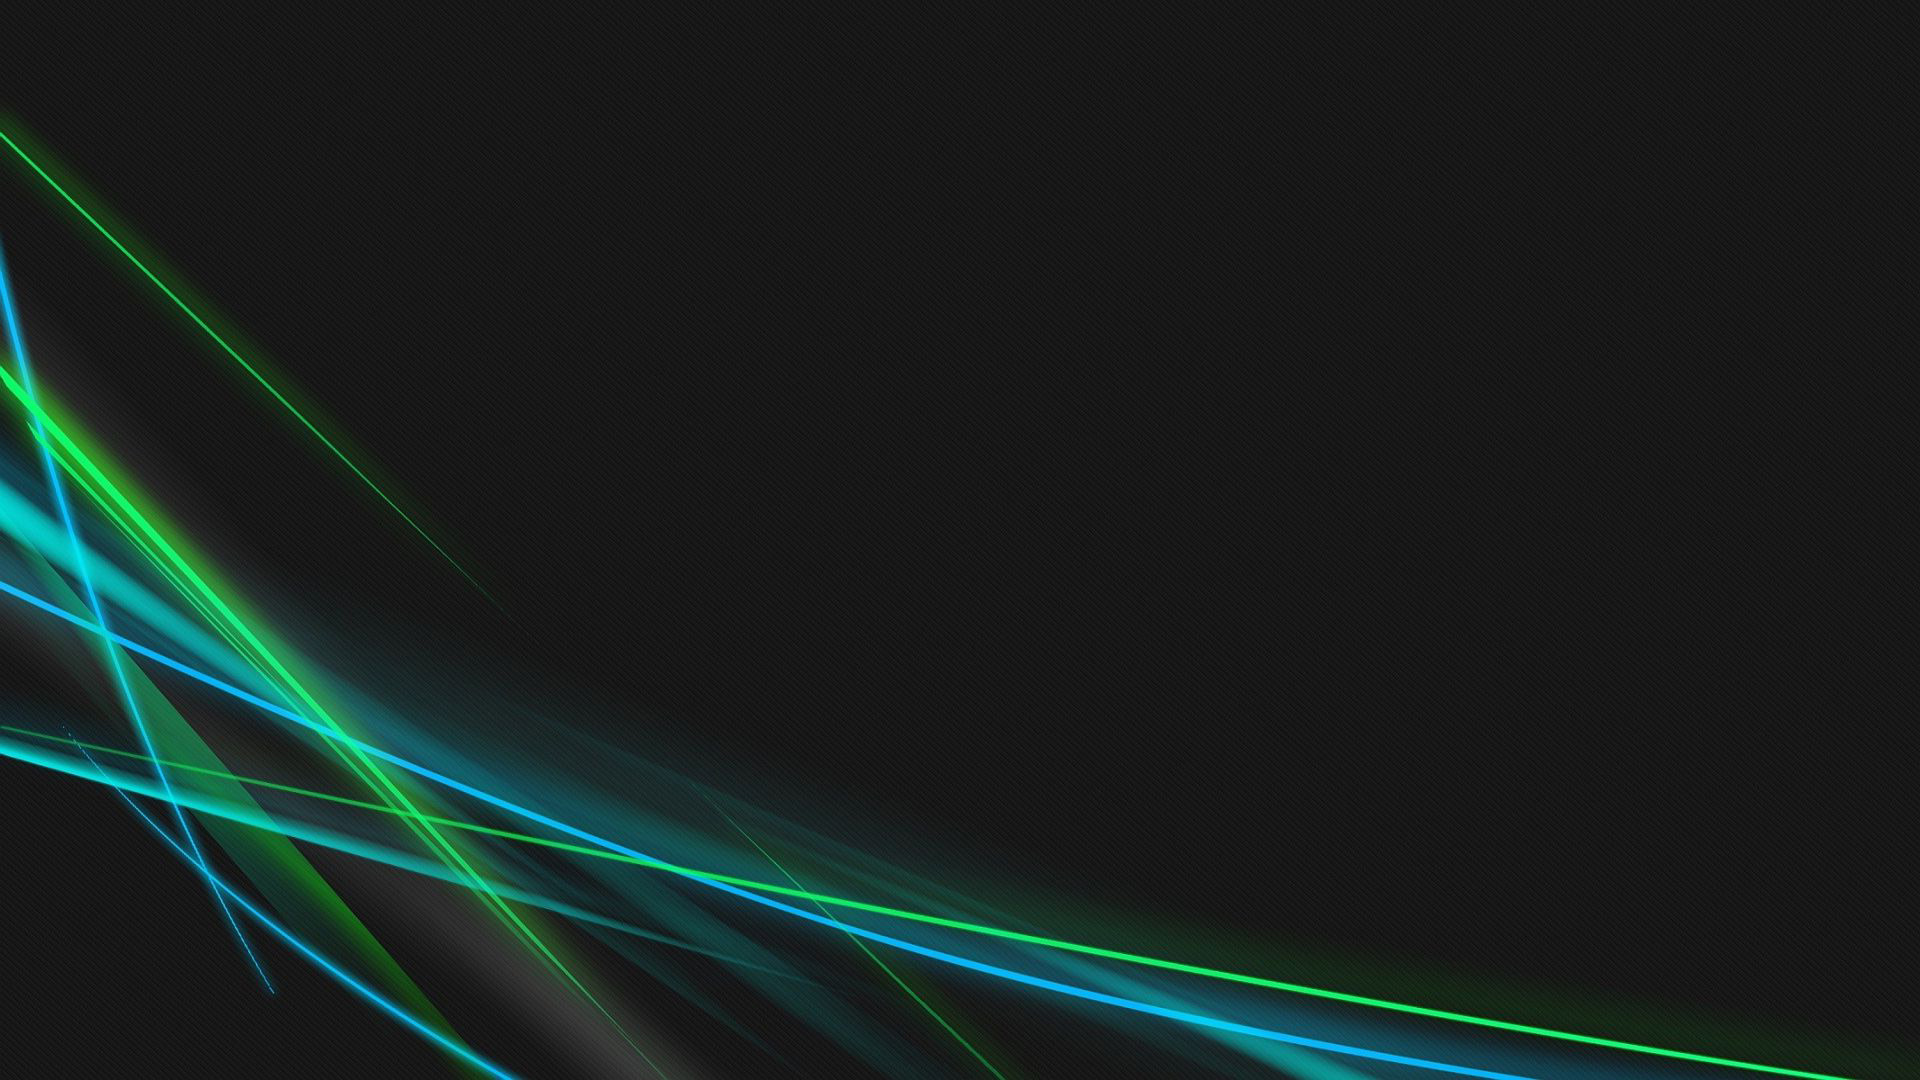 Blue and green neon curves wallpaper 6551 1920x1080